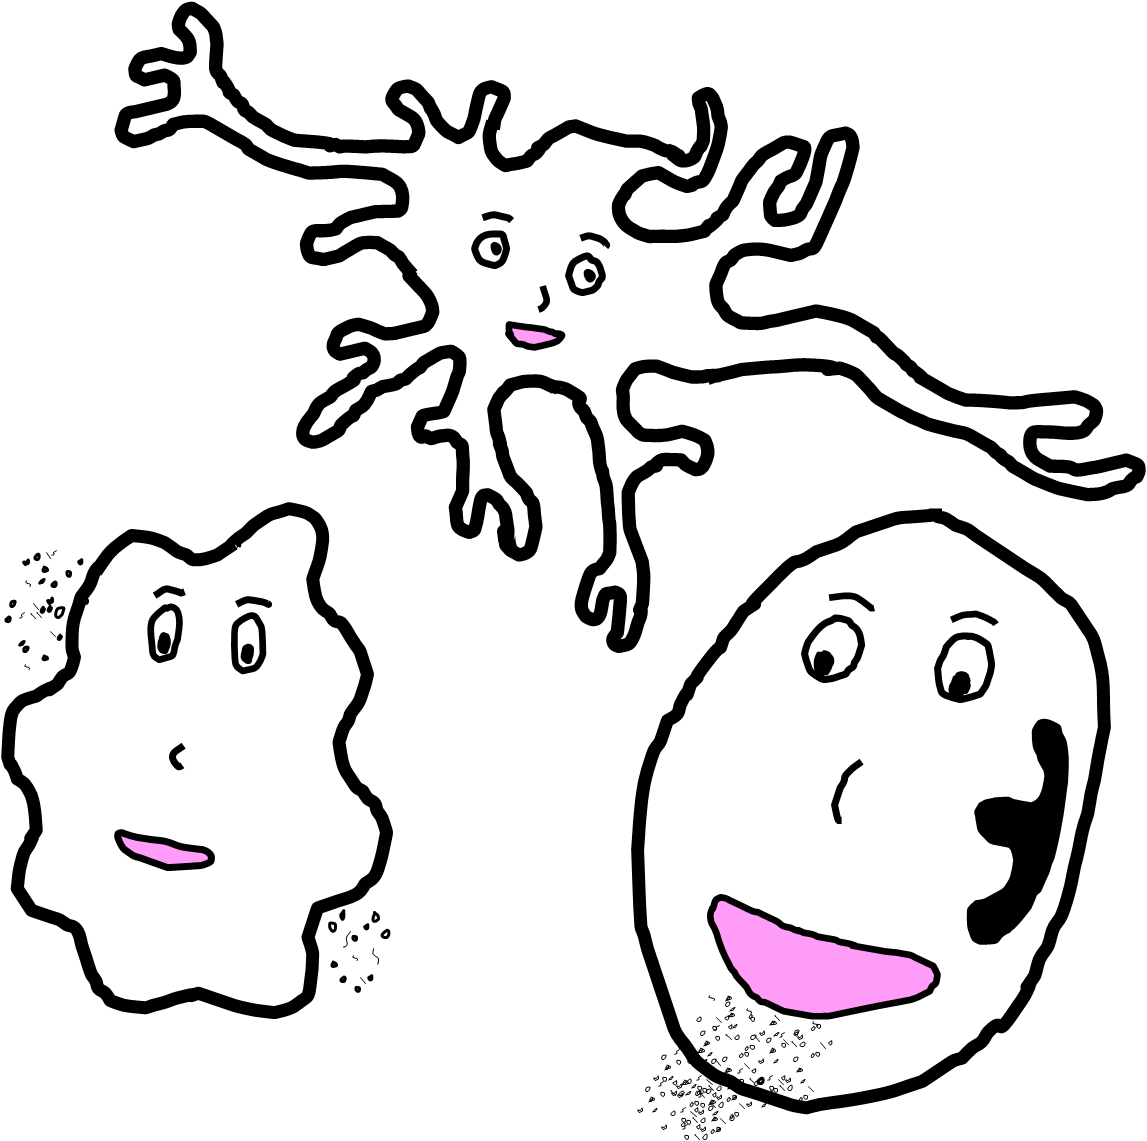 white blood cells.png